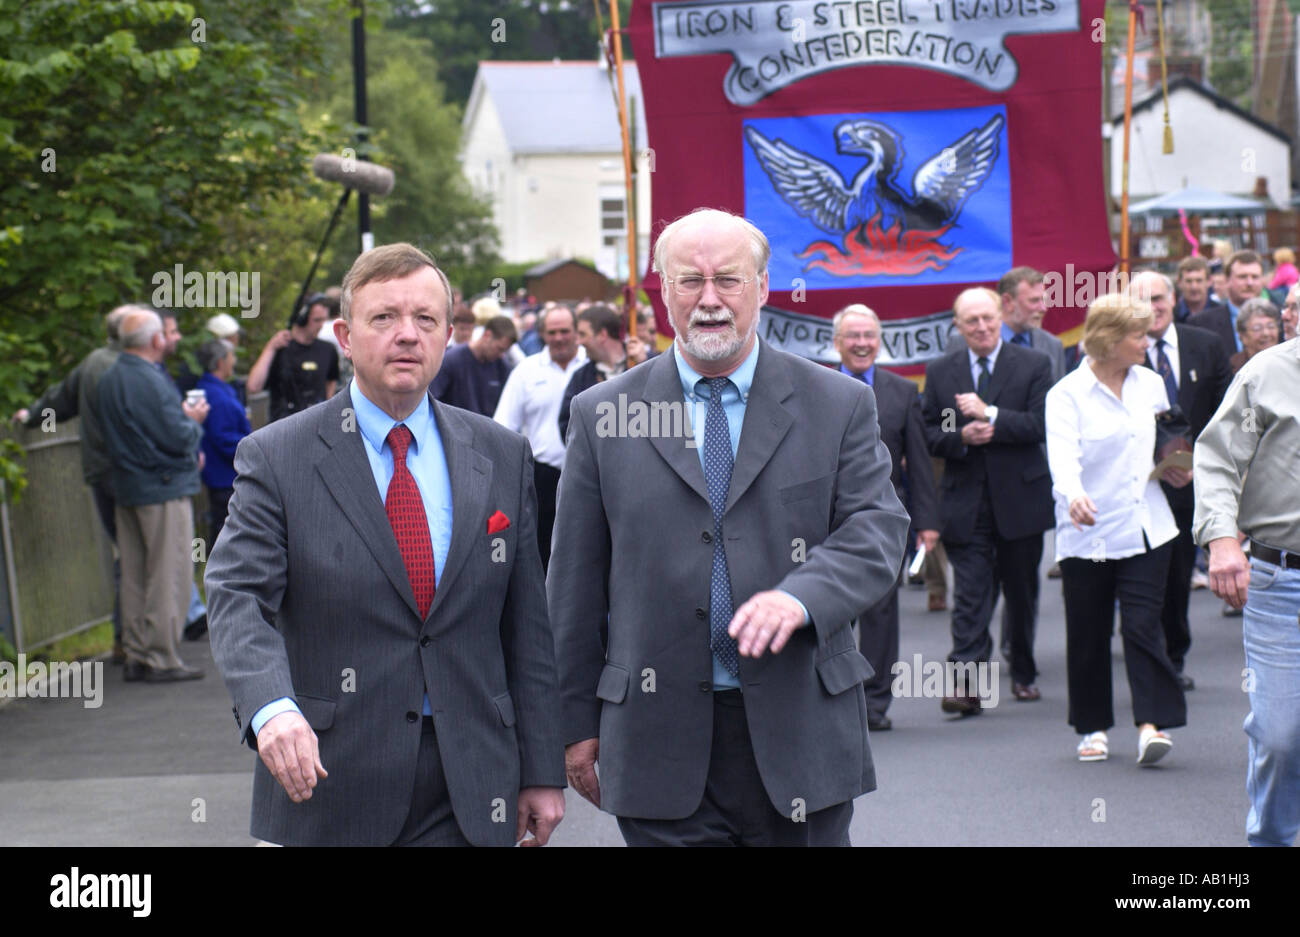 labour-politicians-peter-law-l-llew-smith-r-march-with-workers-and-AB1HJ3.jpg